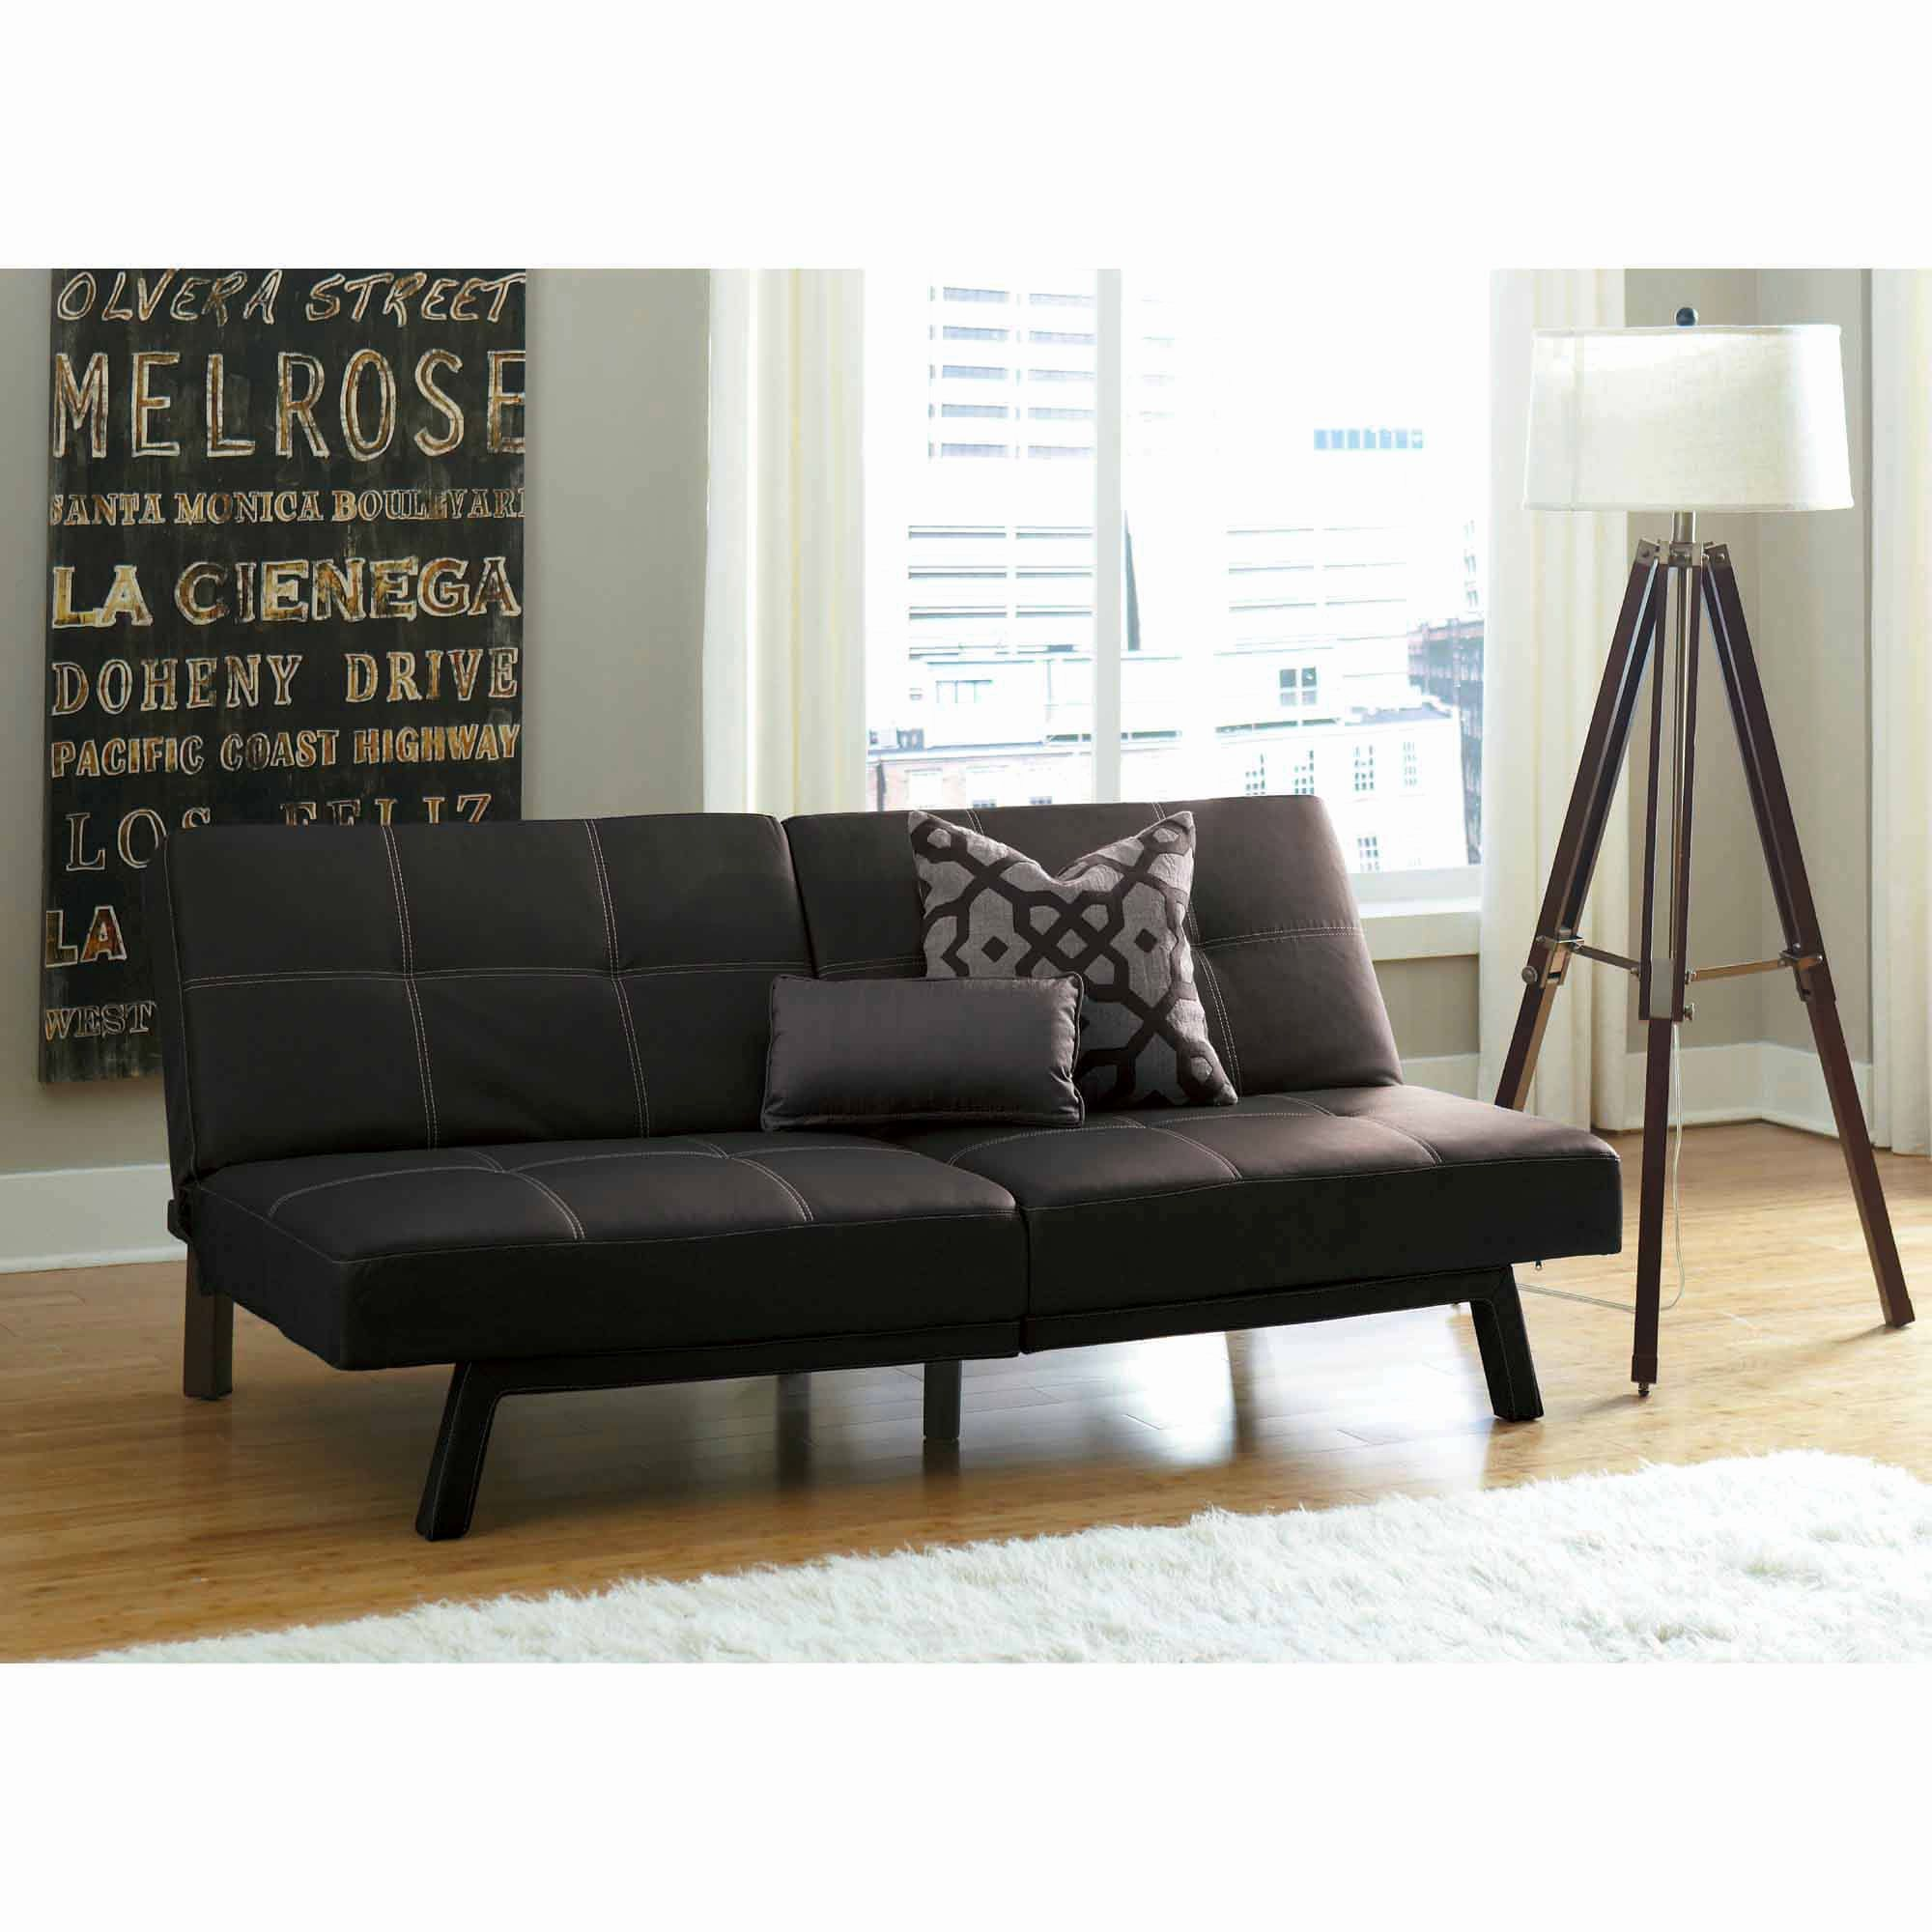 Lovely Sectional Sofa Photographs Awesome Futon Living Room Set At Custom Pink